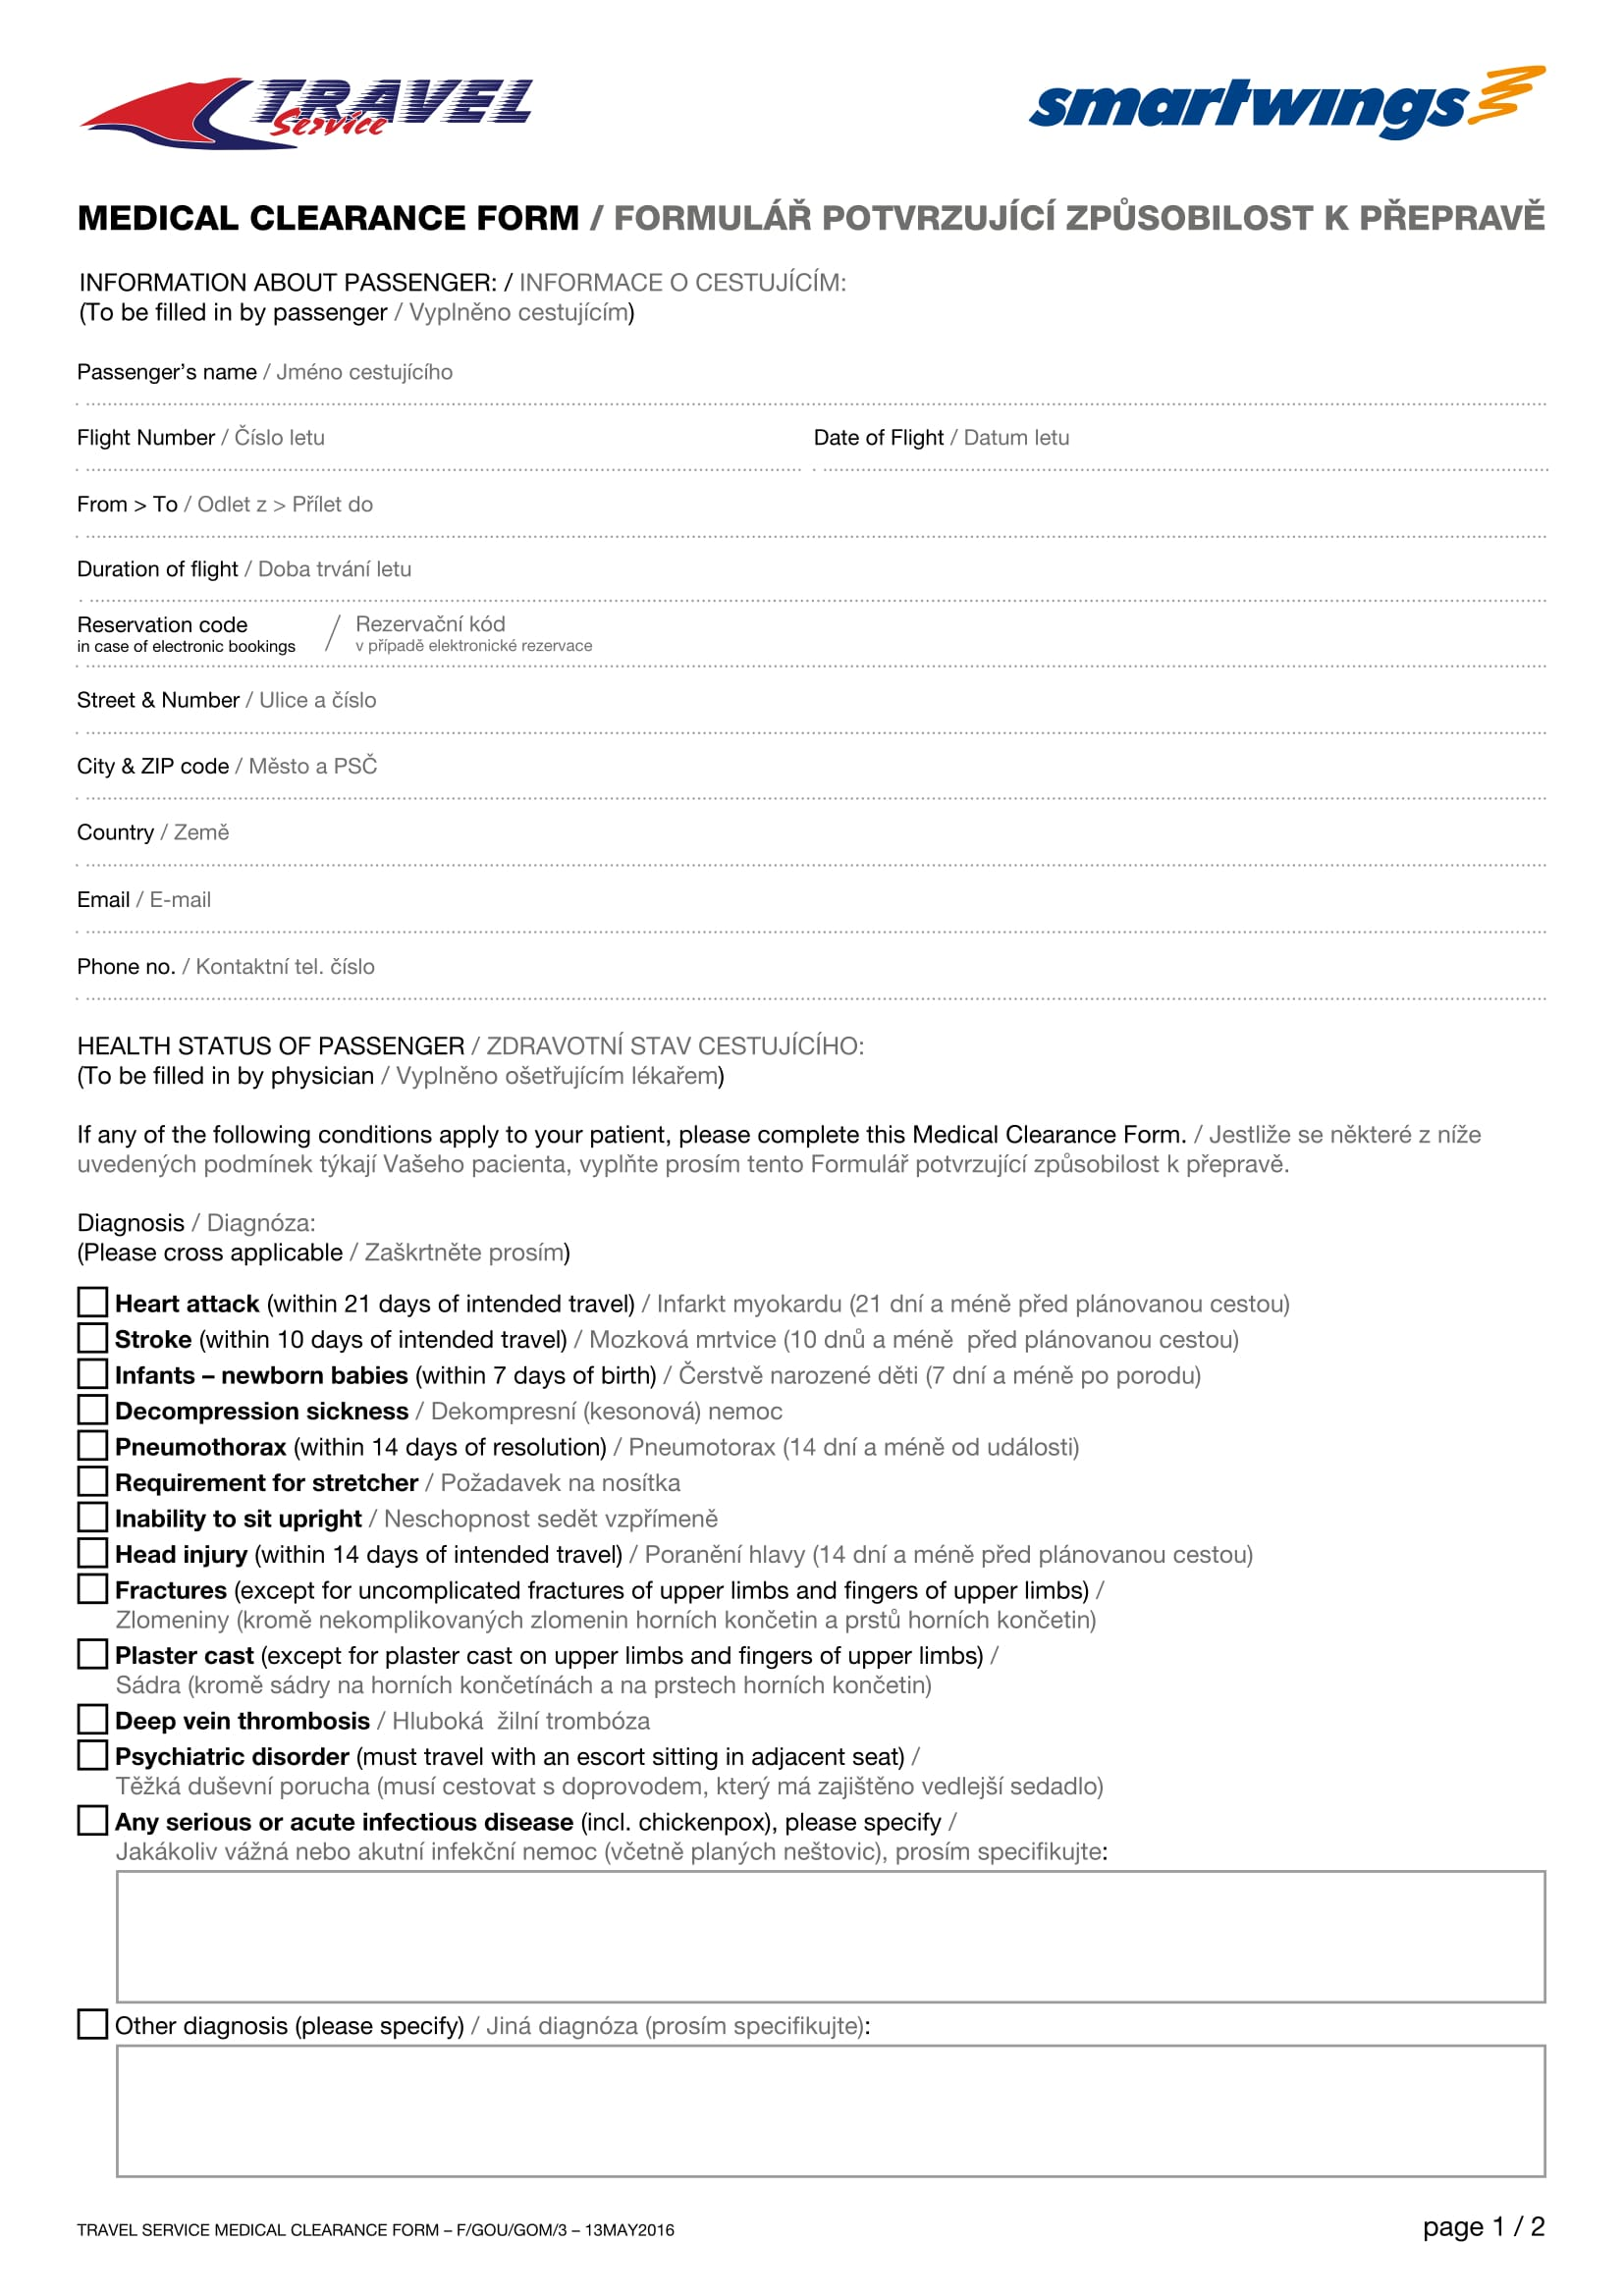 travel service medical clearance form 1